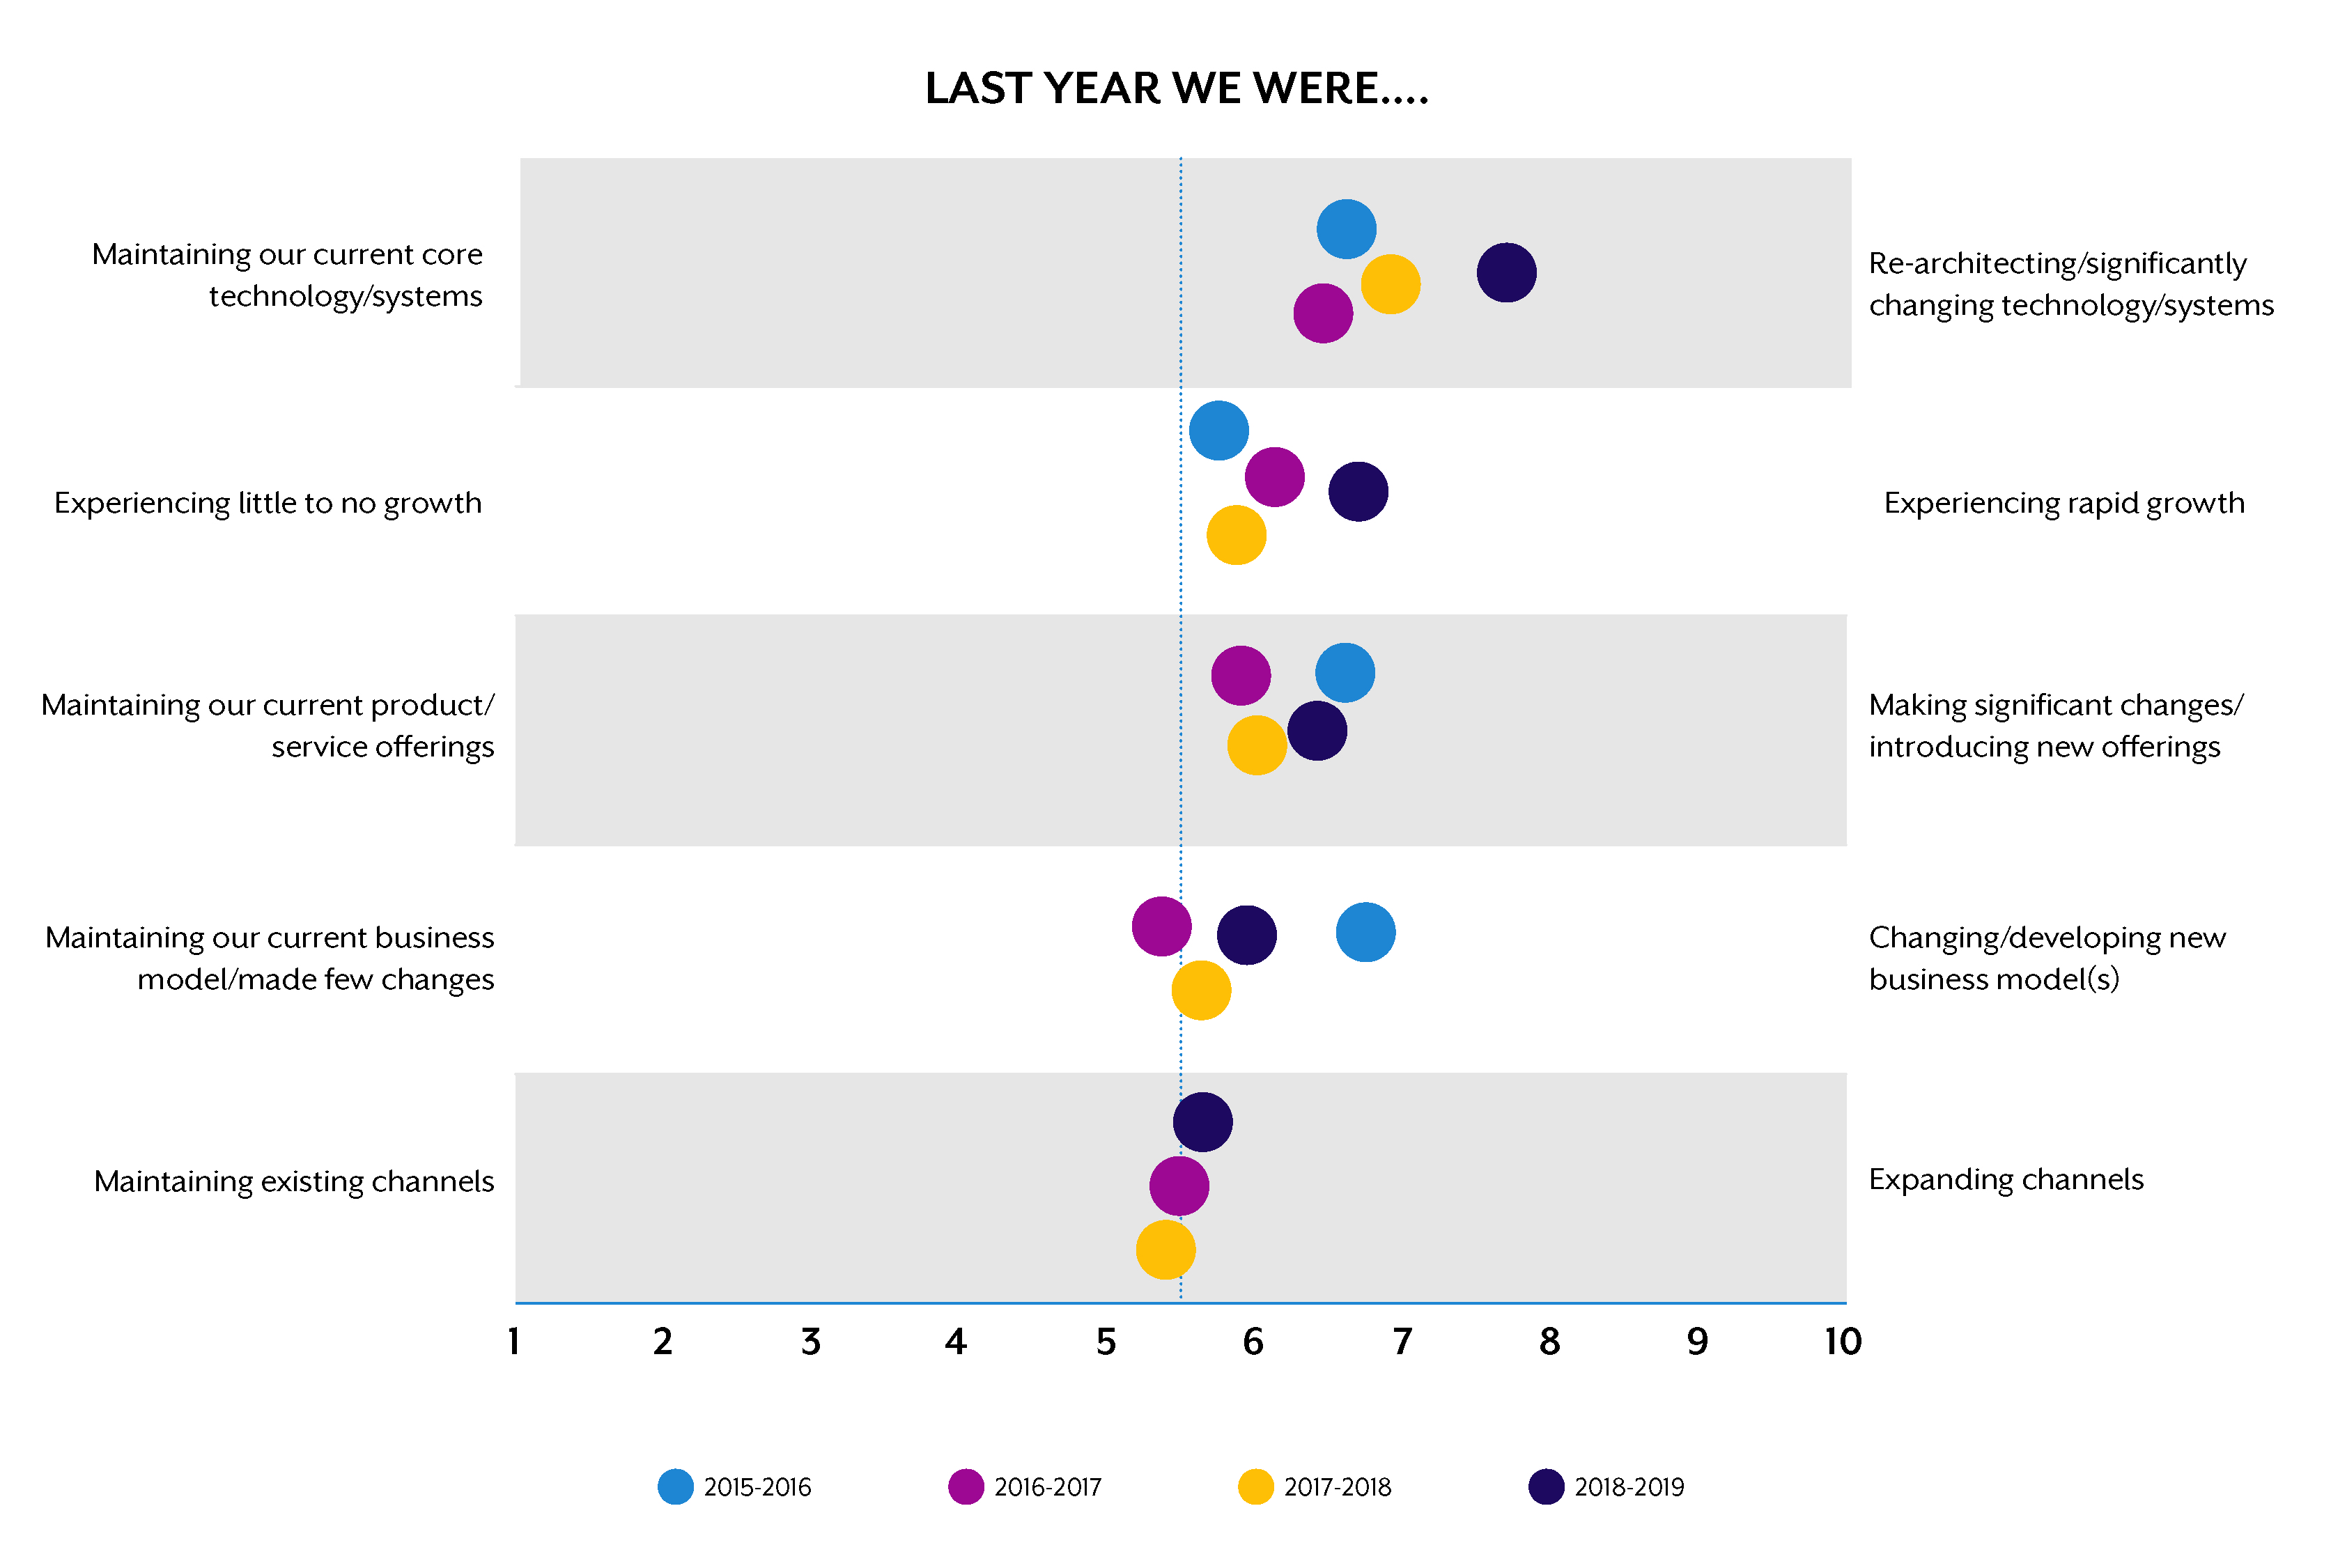 The state of your company - last 12 months